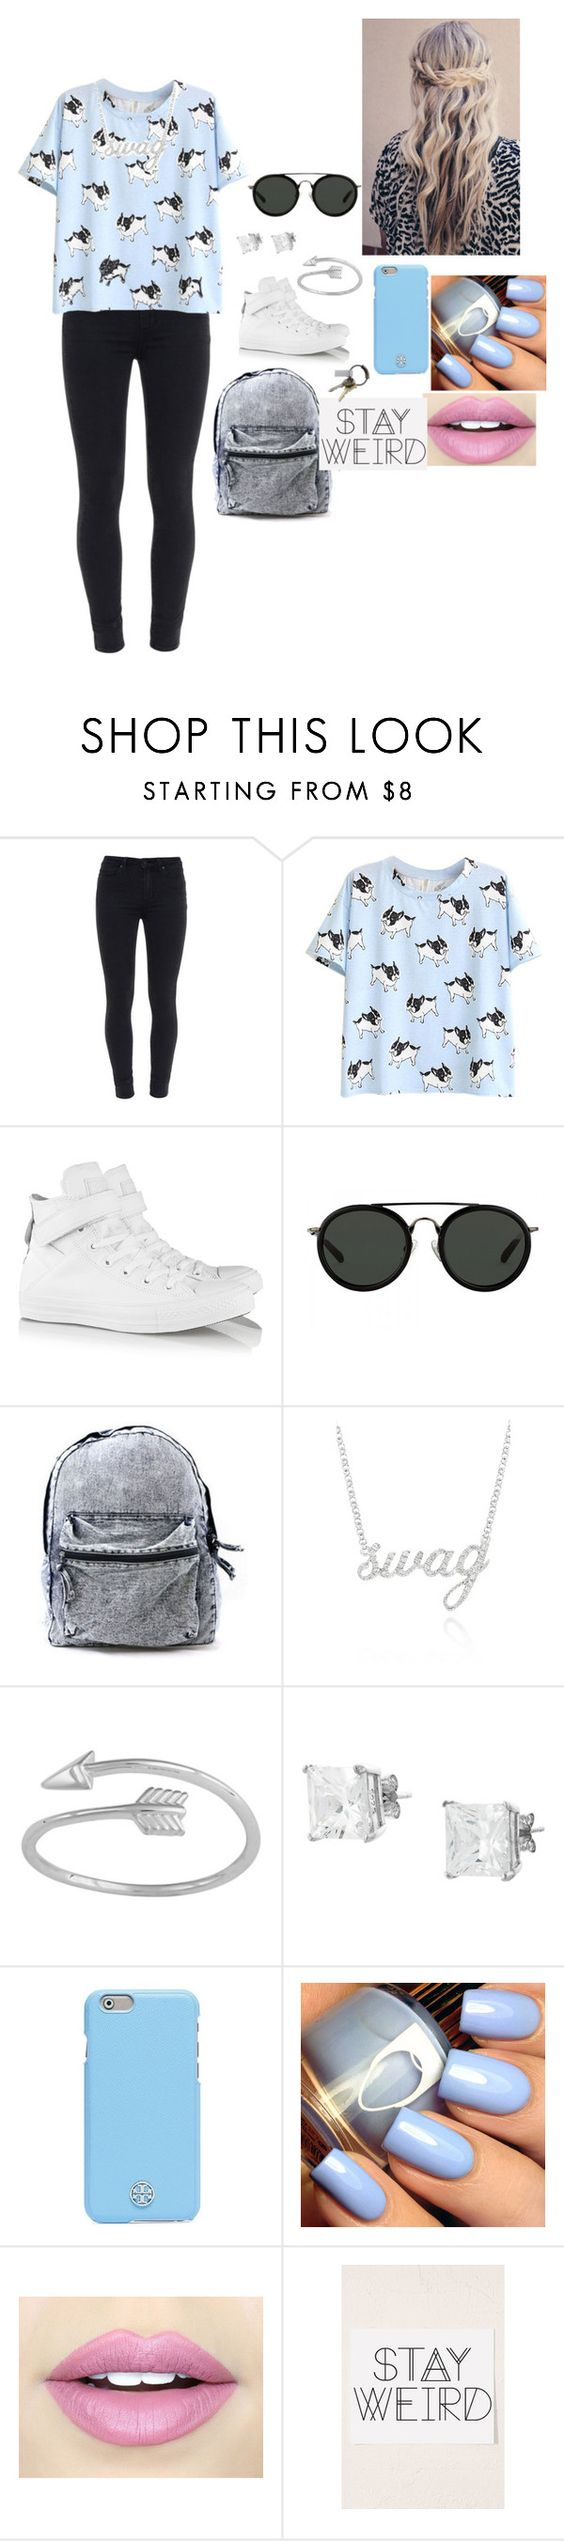 """""""going to school """" by jchristina ❤ liked on Polyvore featuring interior, interiors, interior design, home, home decor, interior decorating, Paige Denim, Converse, Dries Van Noten and Belk & Co."""